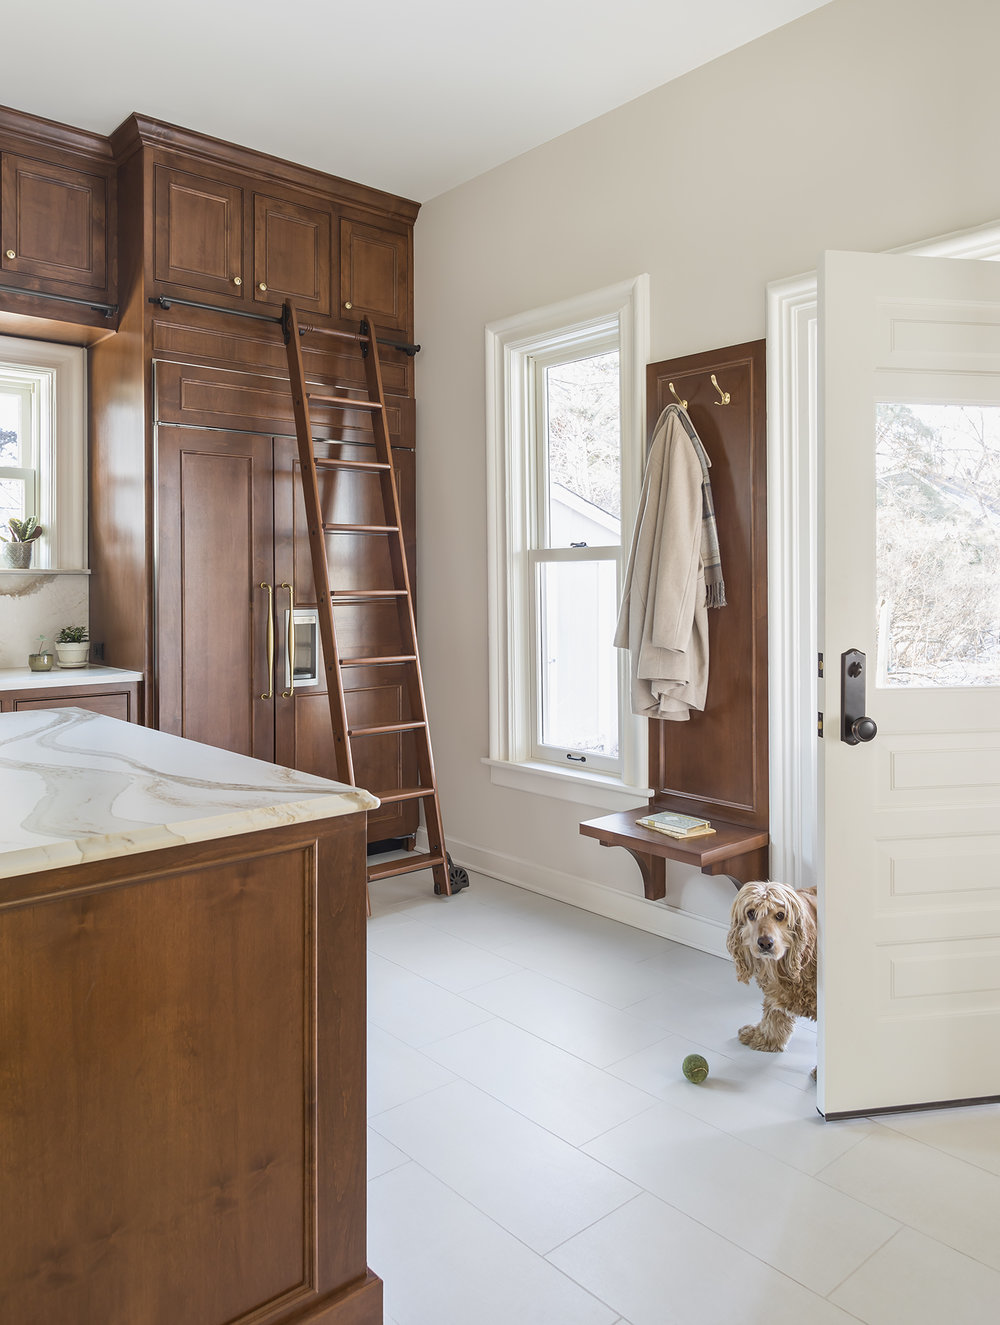 A small bench and hooks near the back door keeps things tidy. Tiled floors with in-floor heat make feet (and four-legged friends) happy!